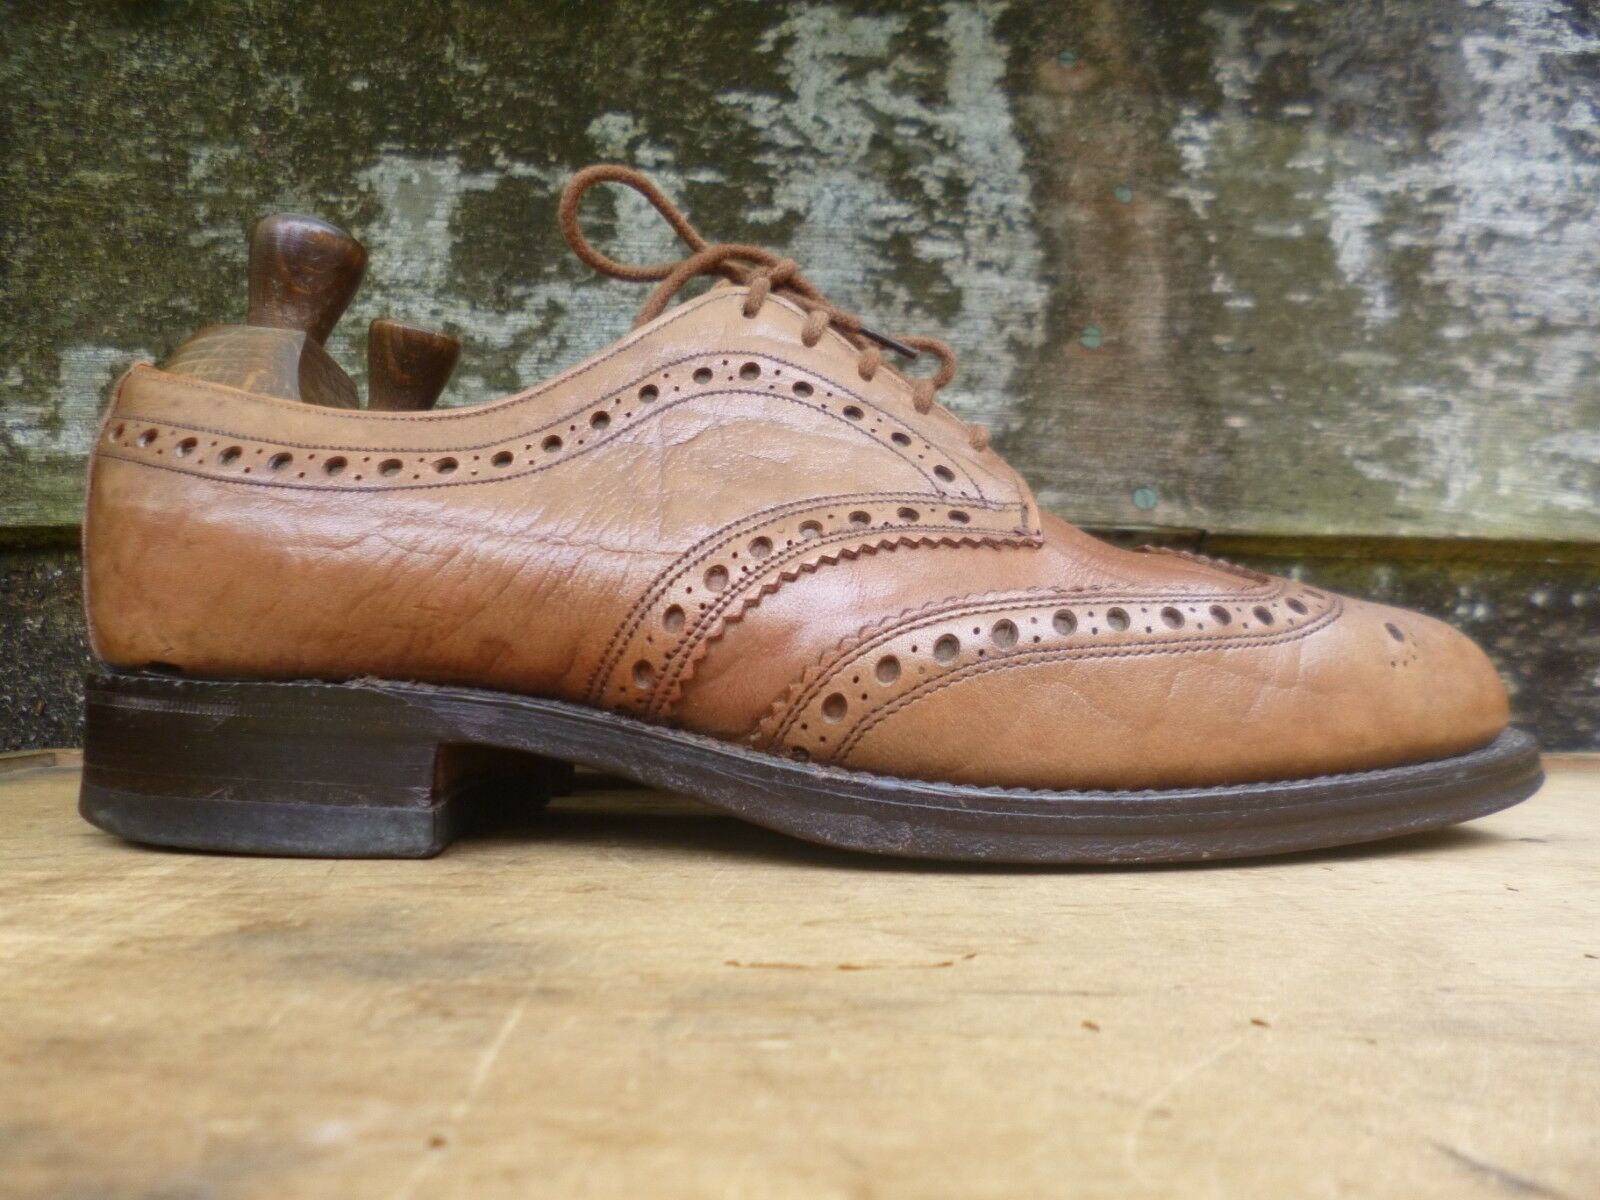 CHEANEY / CHURCH VINTAGE BROGUES - – BROWN / TAN - BROGUES UK 8 – ANTLER -EXCELLENT COND 9a953f